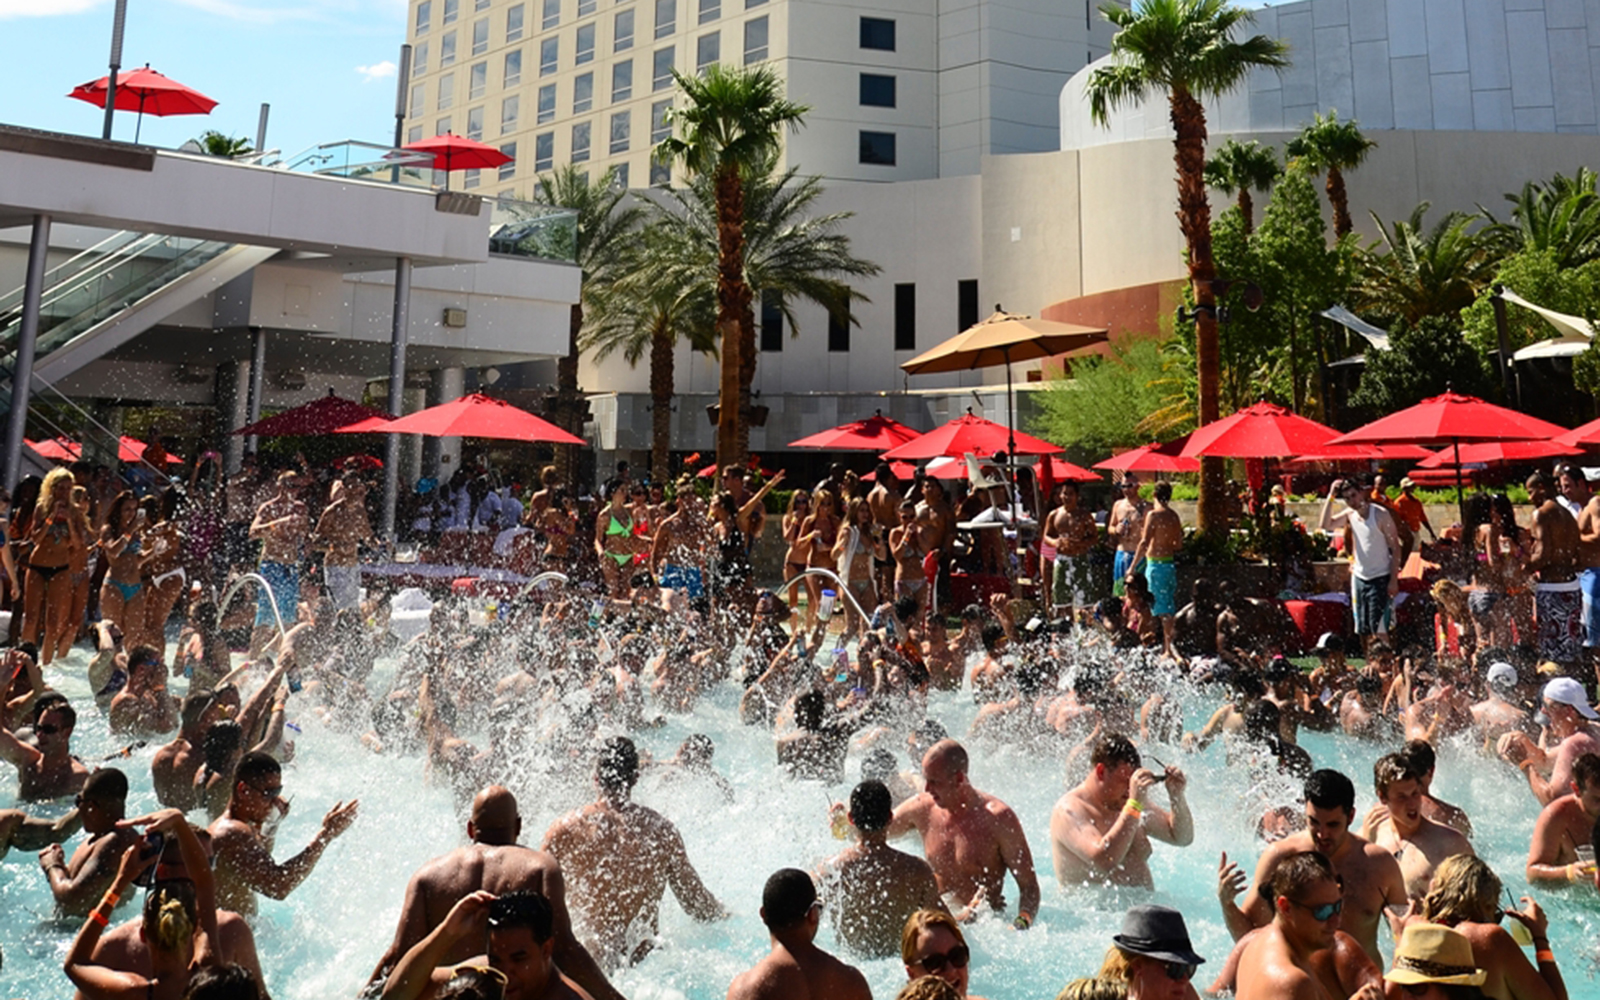 Best Pools in Las Vegas: Palms Casino Resort